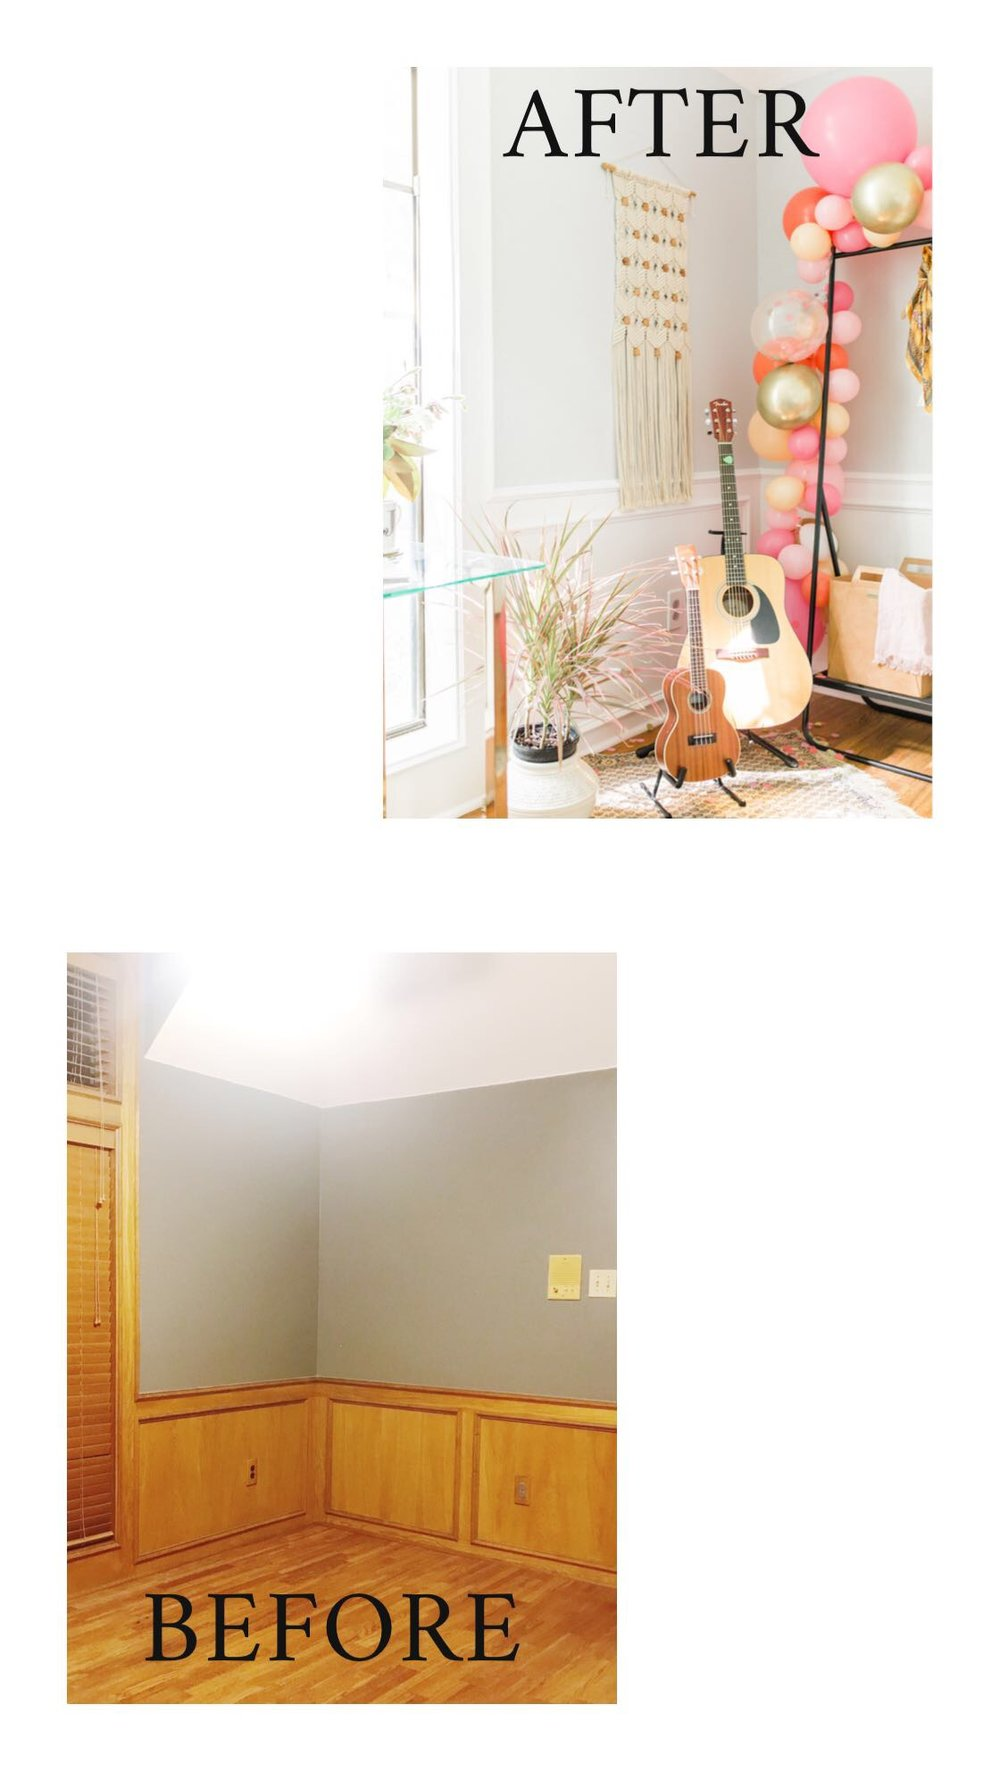 White Cabinets Office Before and After Modern Shared Work Space with Clark+Kensington Designer White Paint Neutral Hygge Home